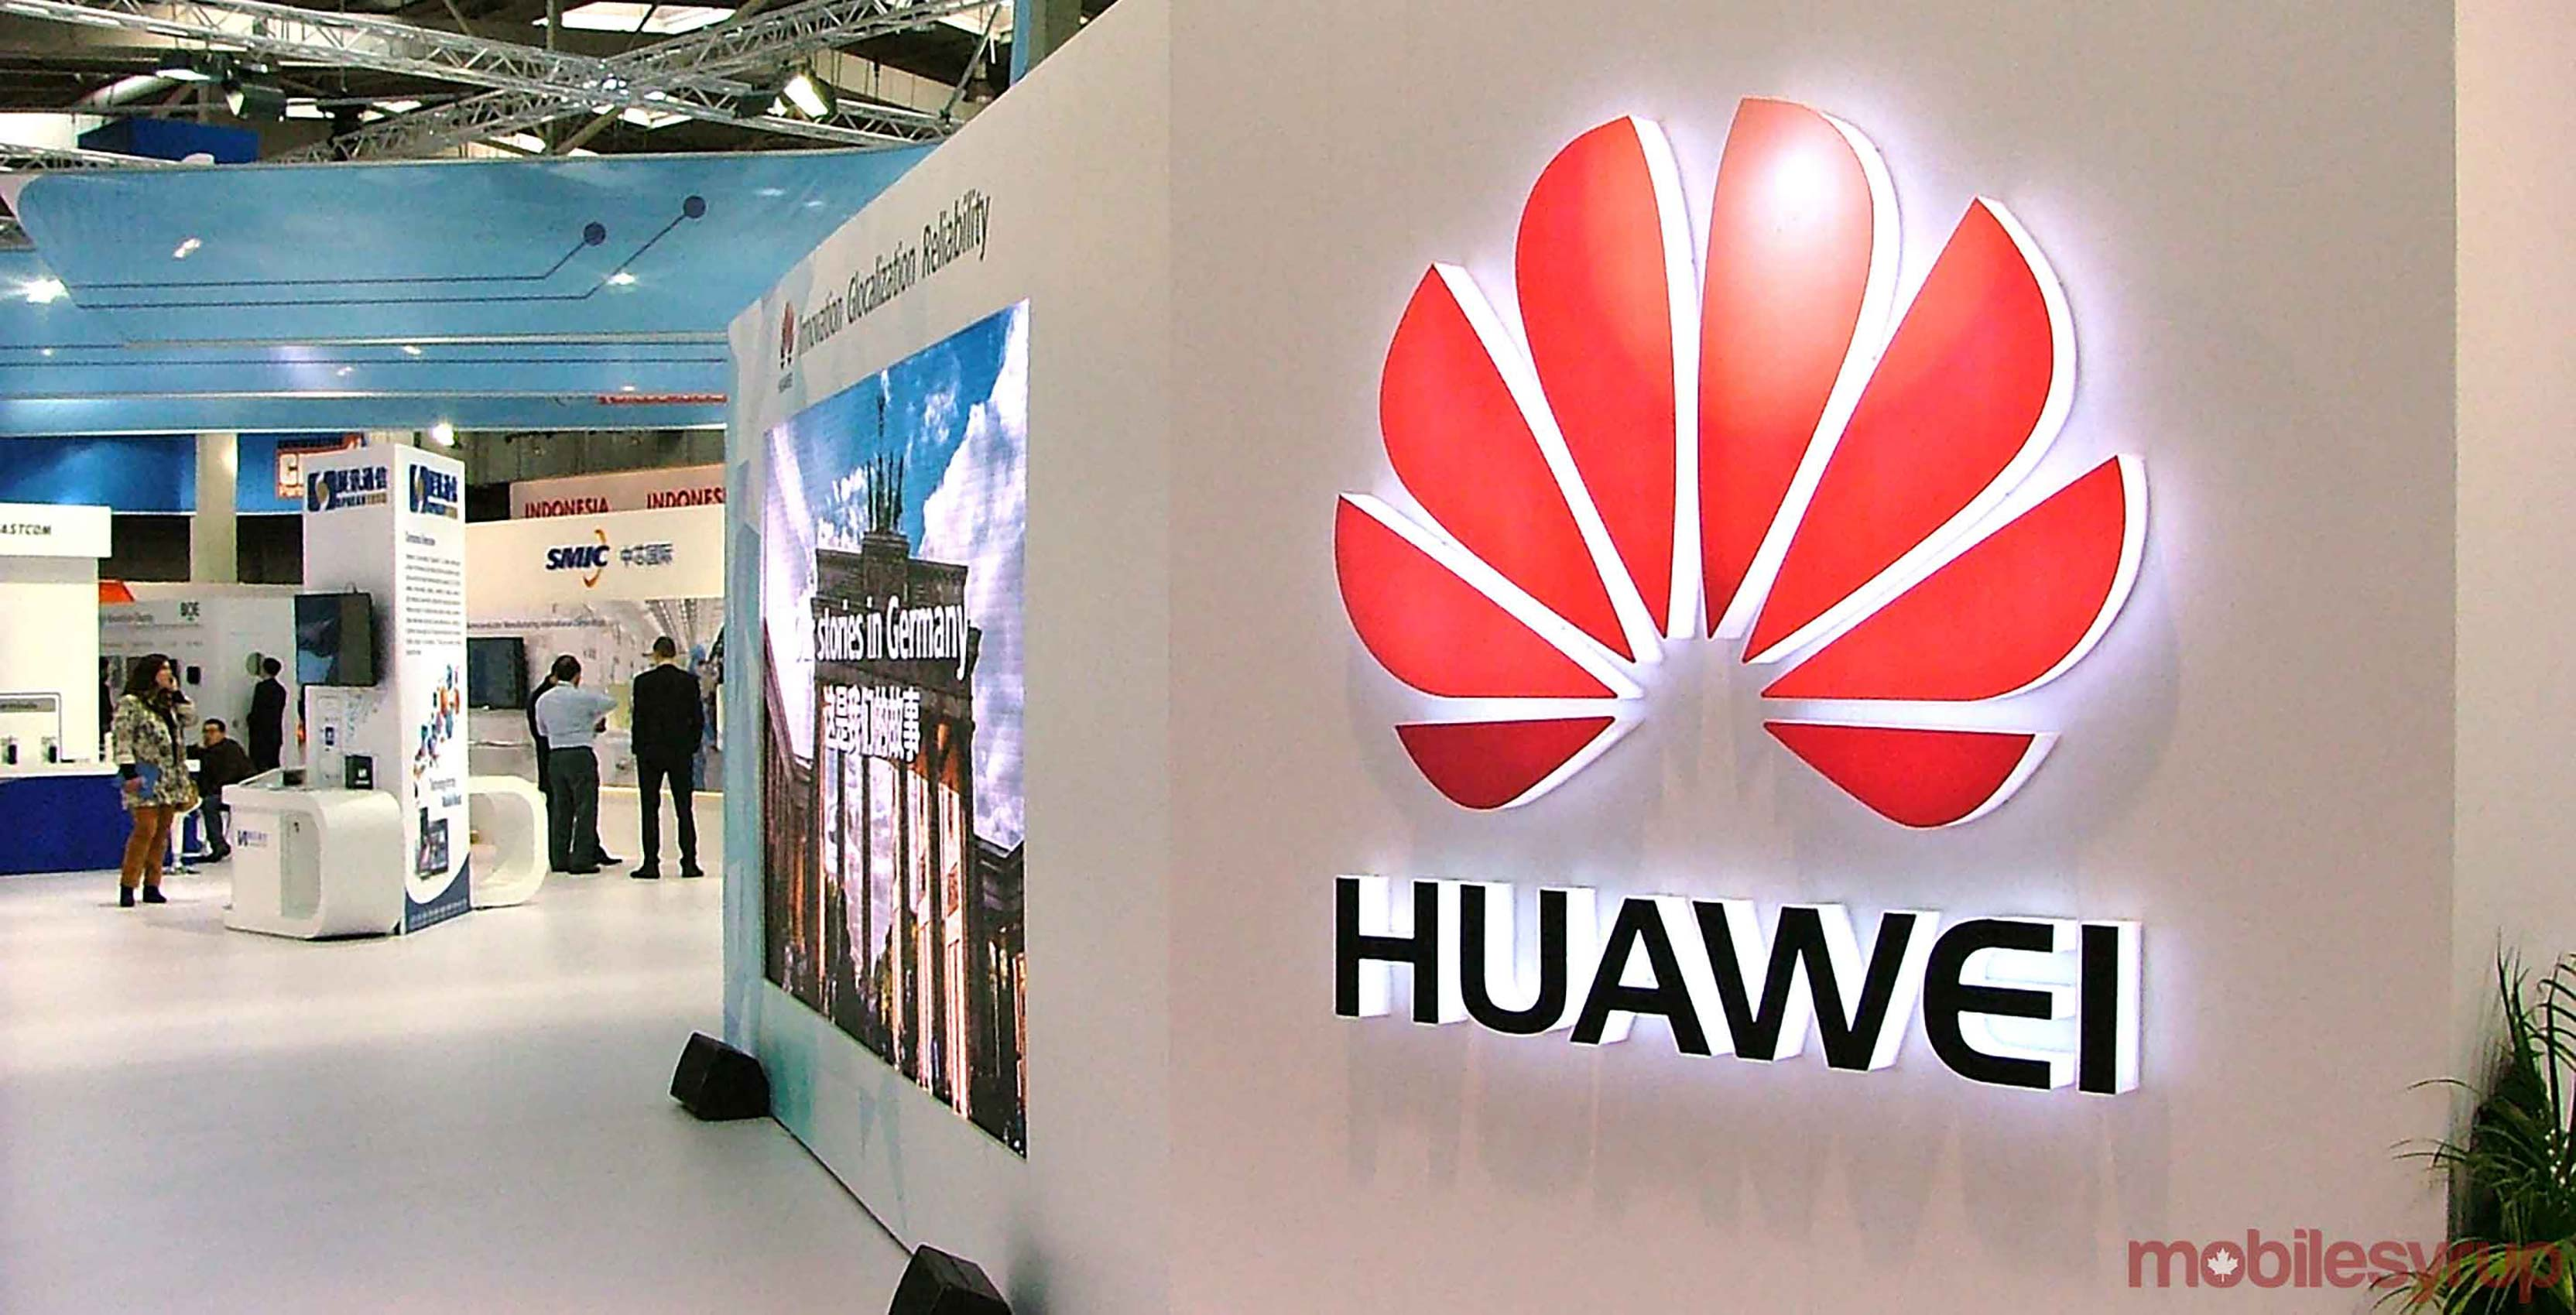 Huawei says Mate 10 will be an 'intelligent machine,' not a smartphone